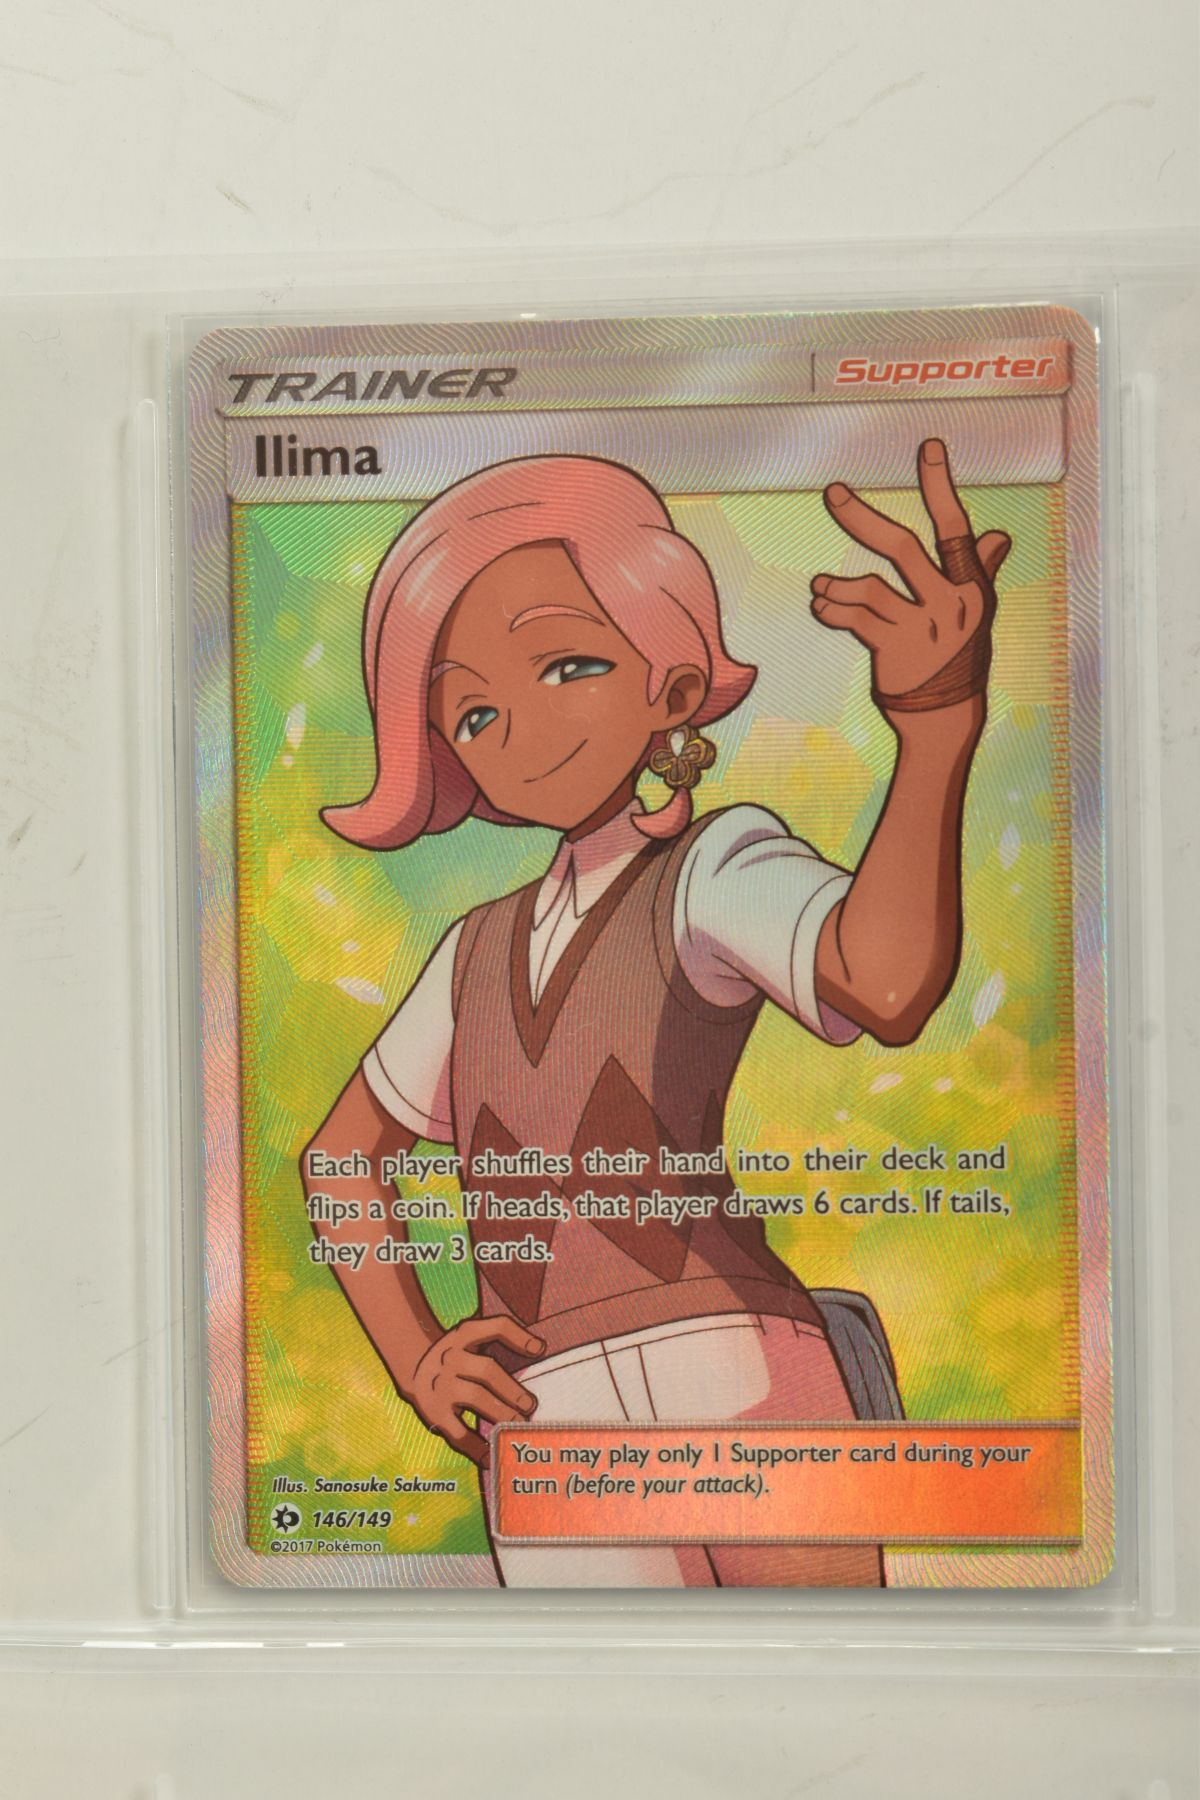 A COLLECTION OF ASSORTED POKEMON CARDS, to include complete master sets of XY Primal Clash, XY - Image 32 of 144